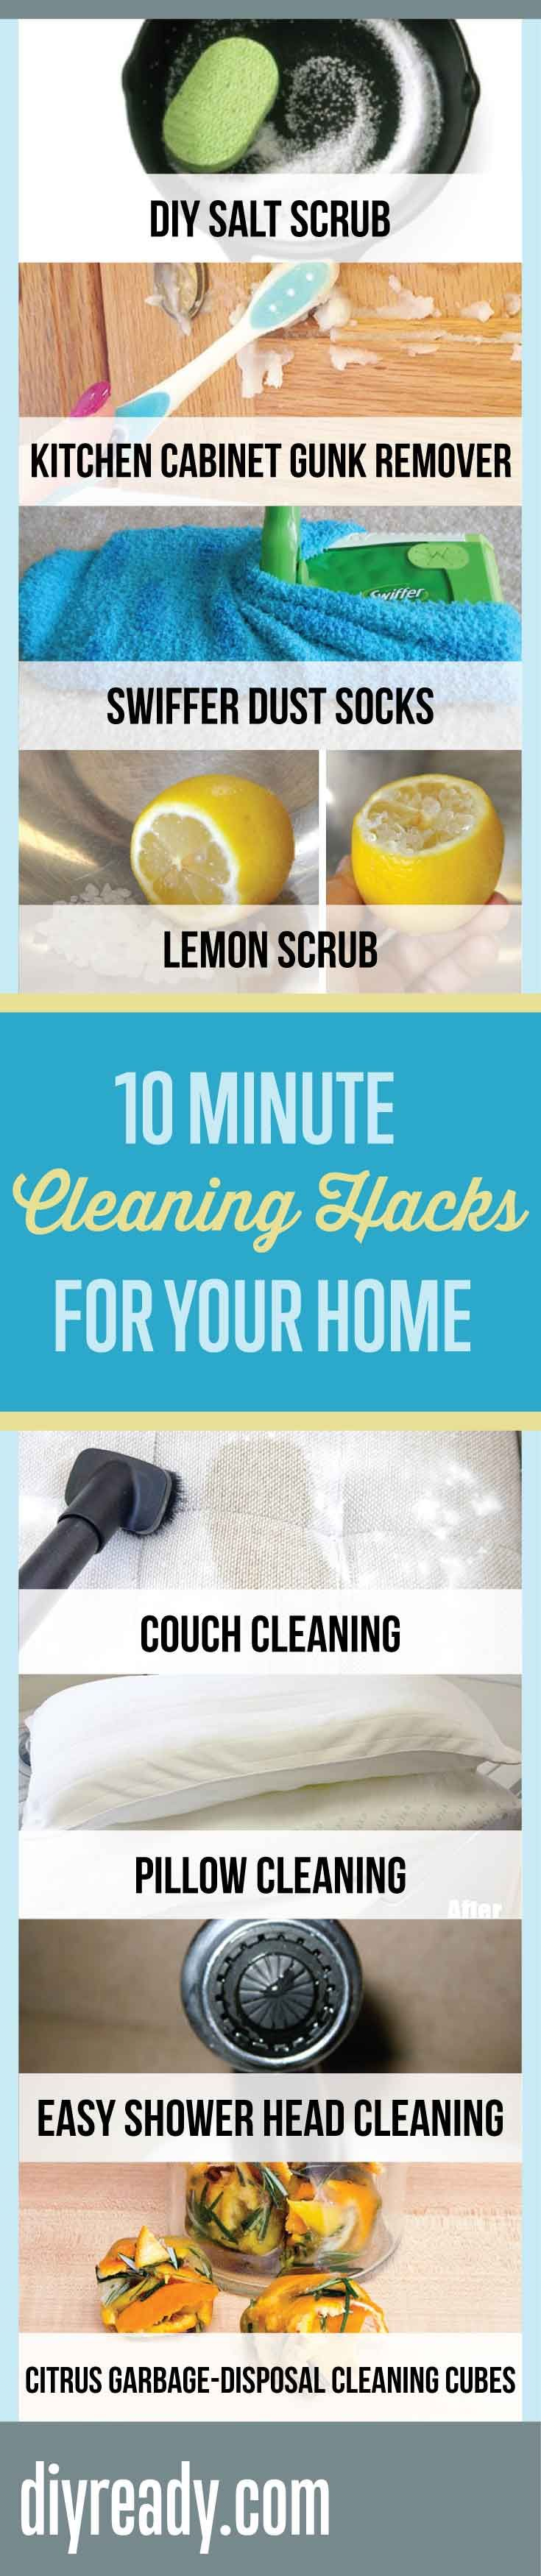 279 best cleaning hacks images on Pinterest | Cleaning tips ...